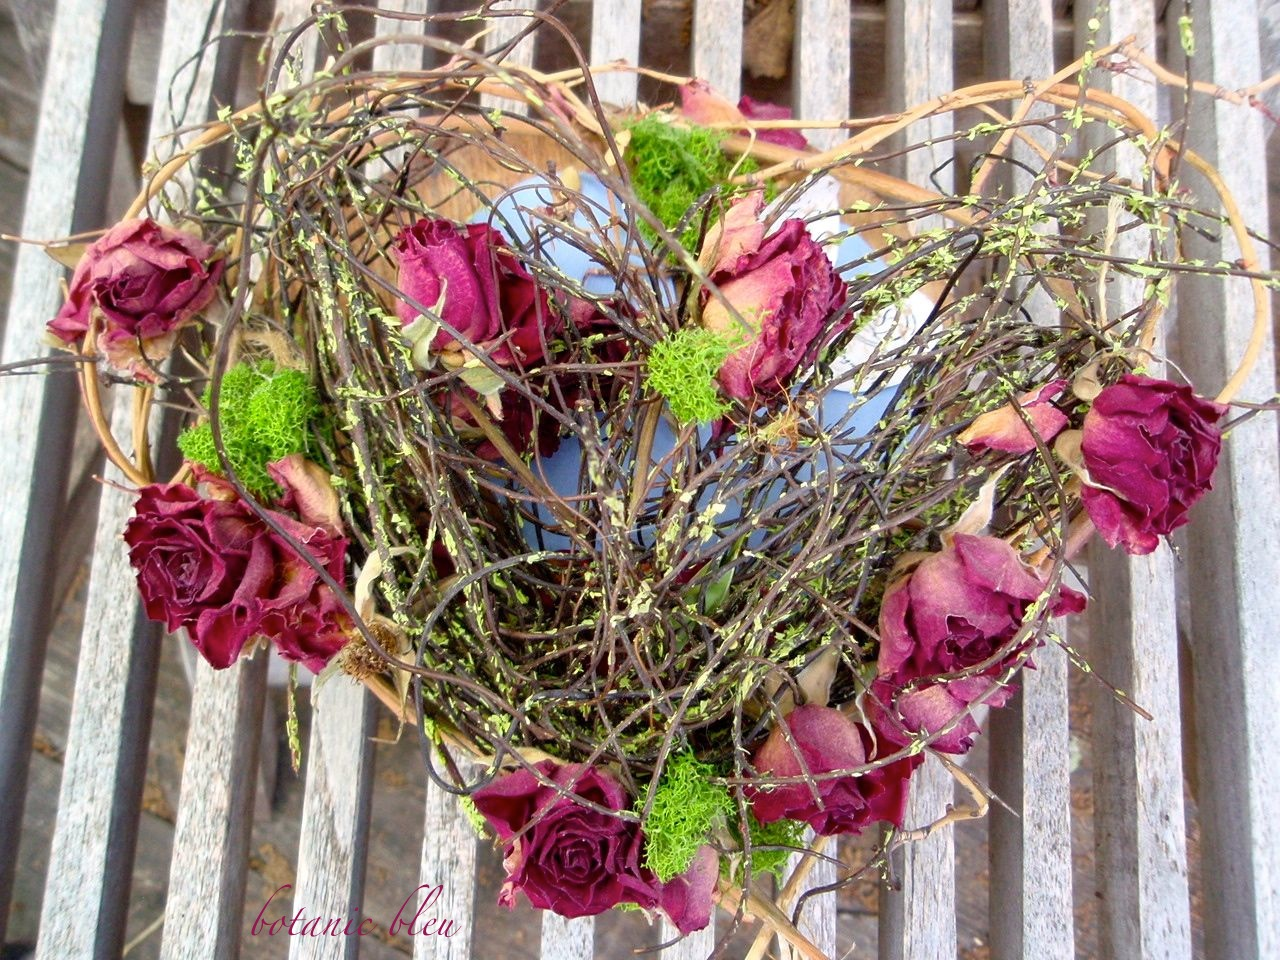 However My Sister Has A Special Talent For Working With Flowers And Her Latest Heart Creation Was This Wild Floral Rustic Vines Create The